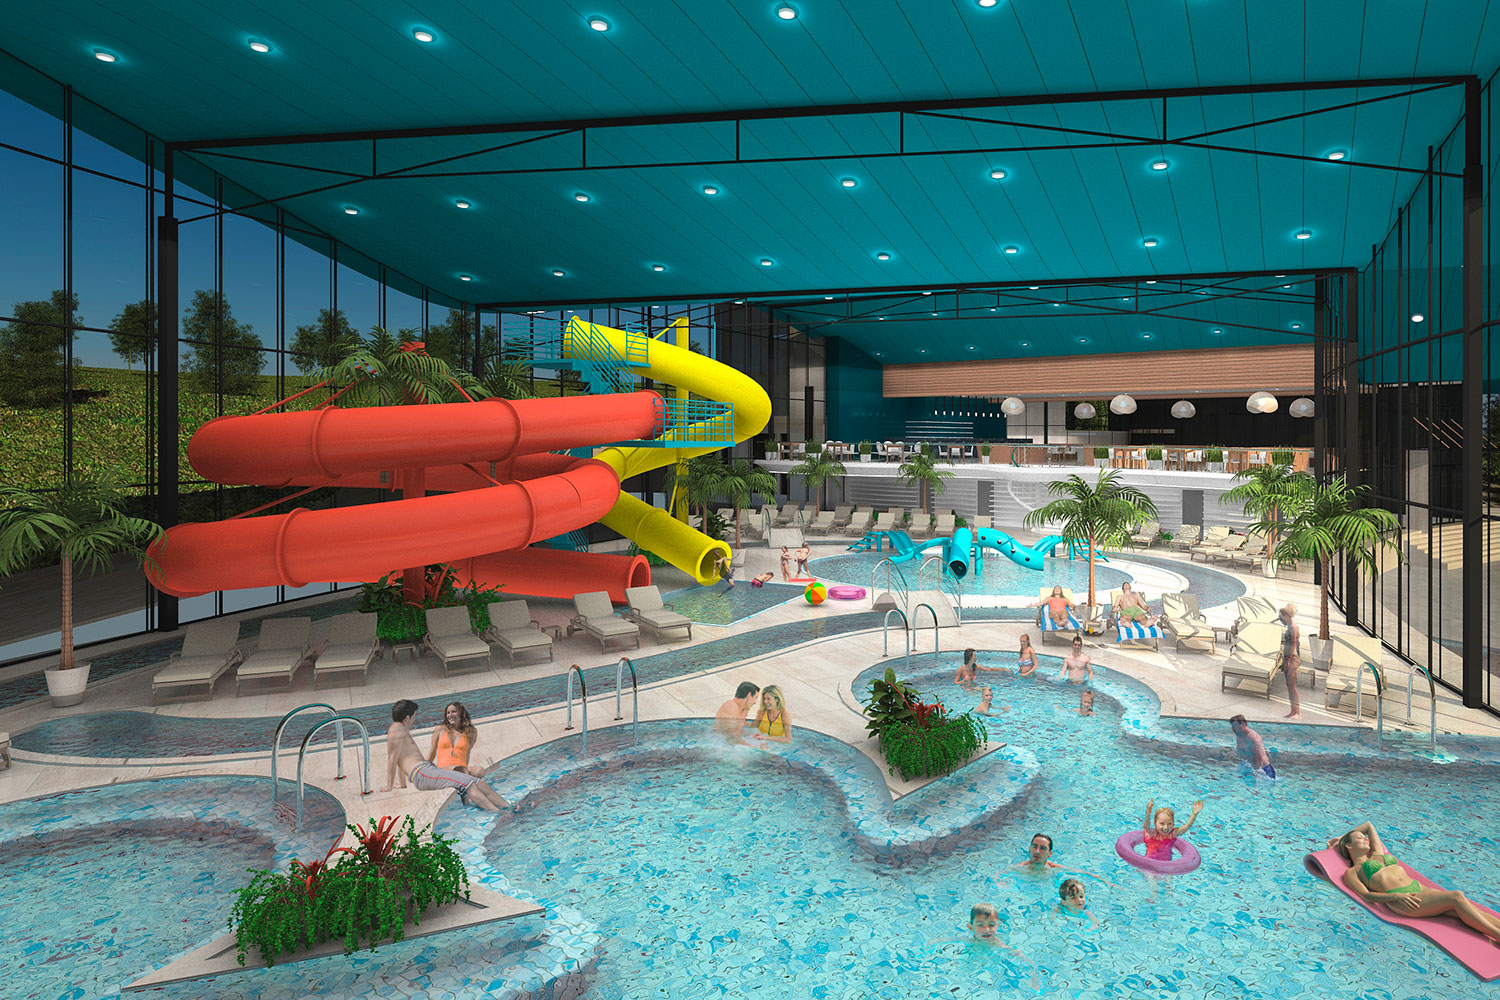 08. INTERIOR OF AQUAPARK